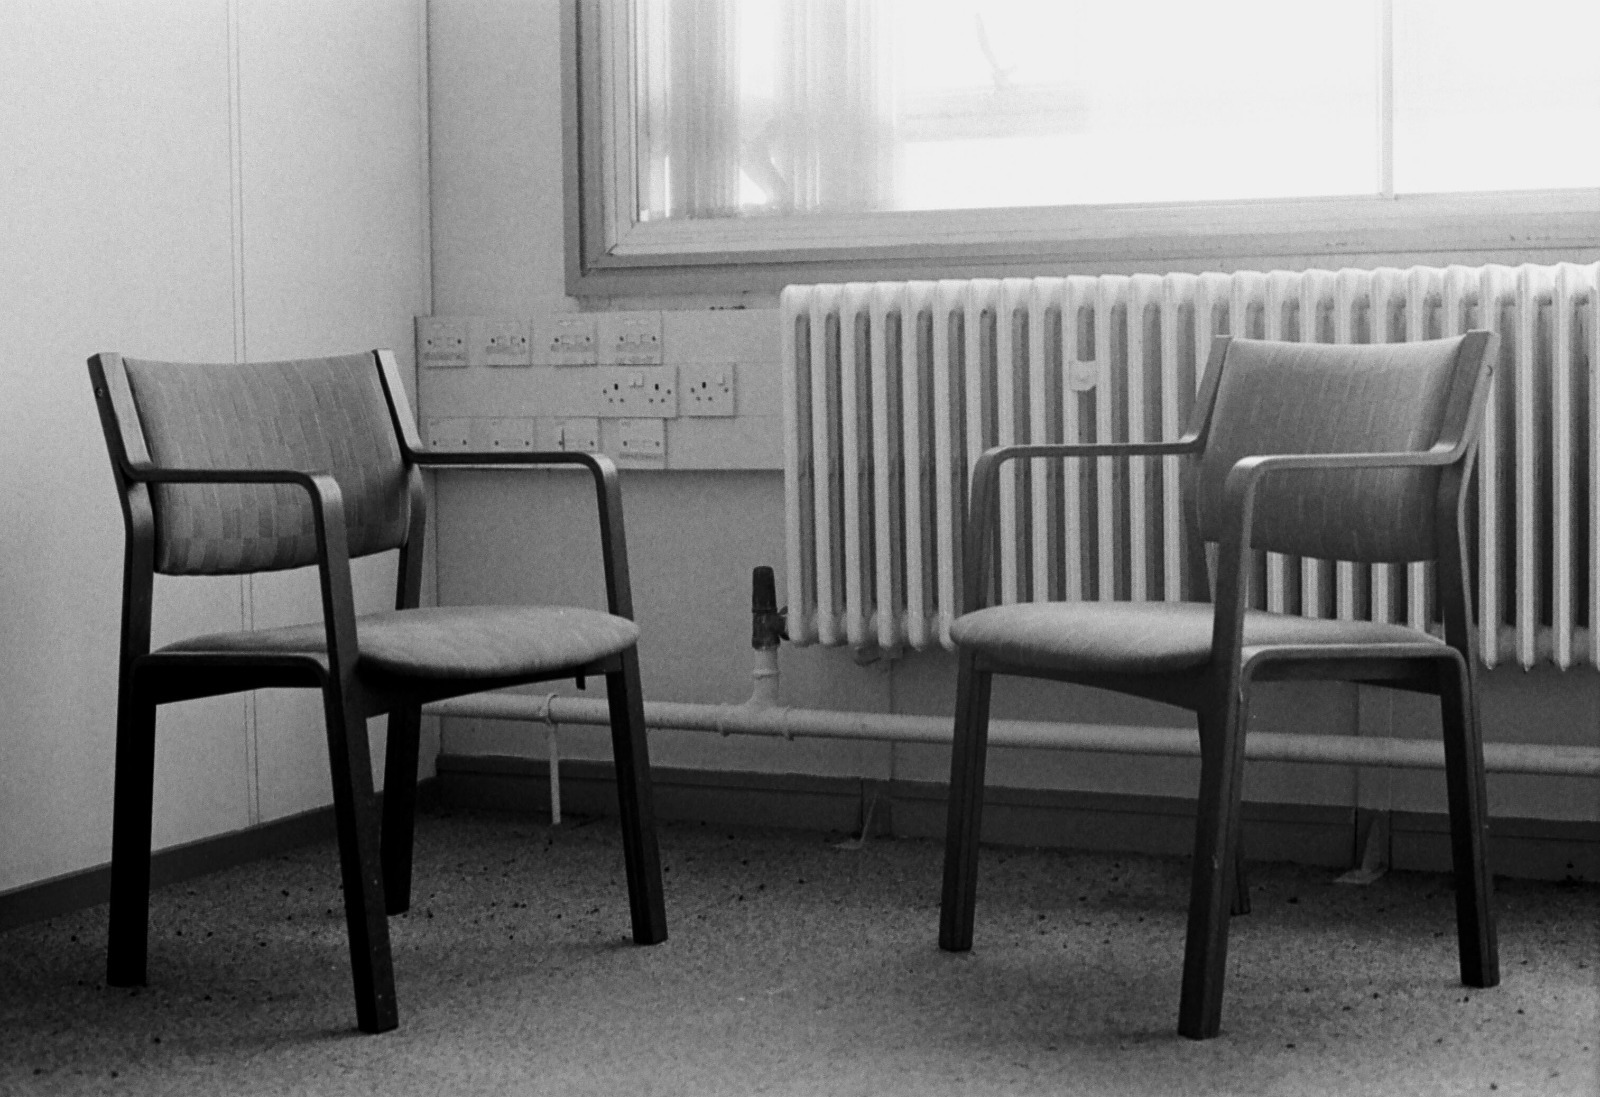 A Pair of Chatty Chairs Photo